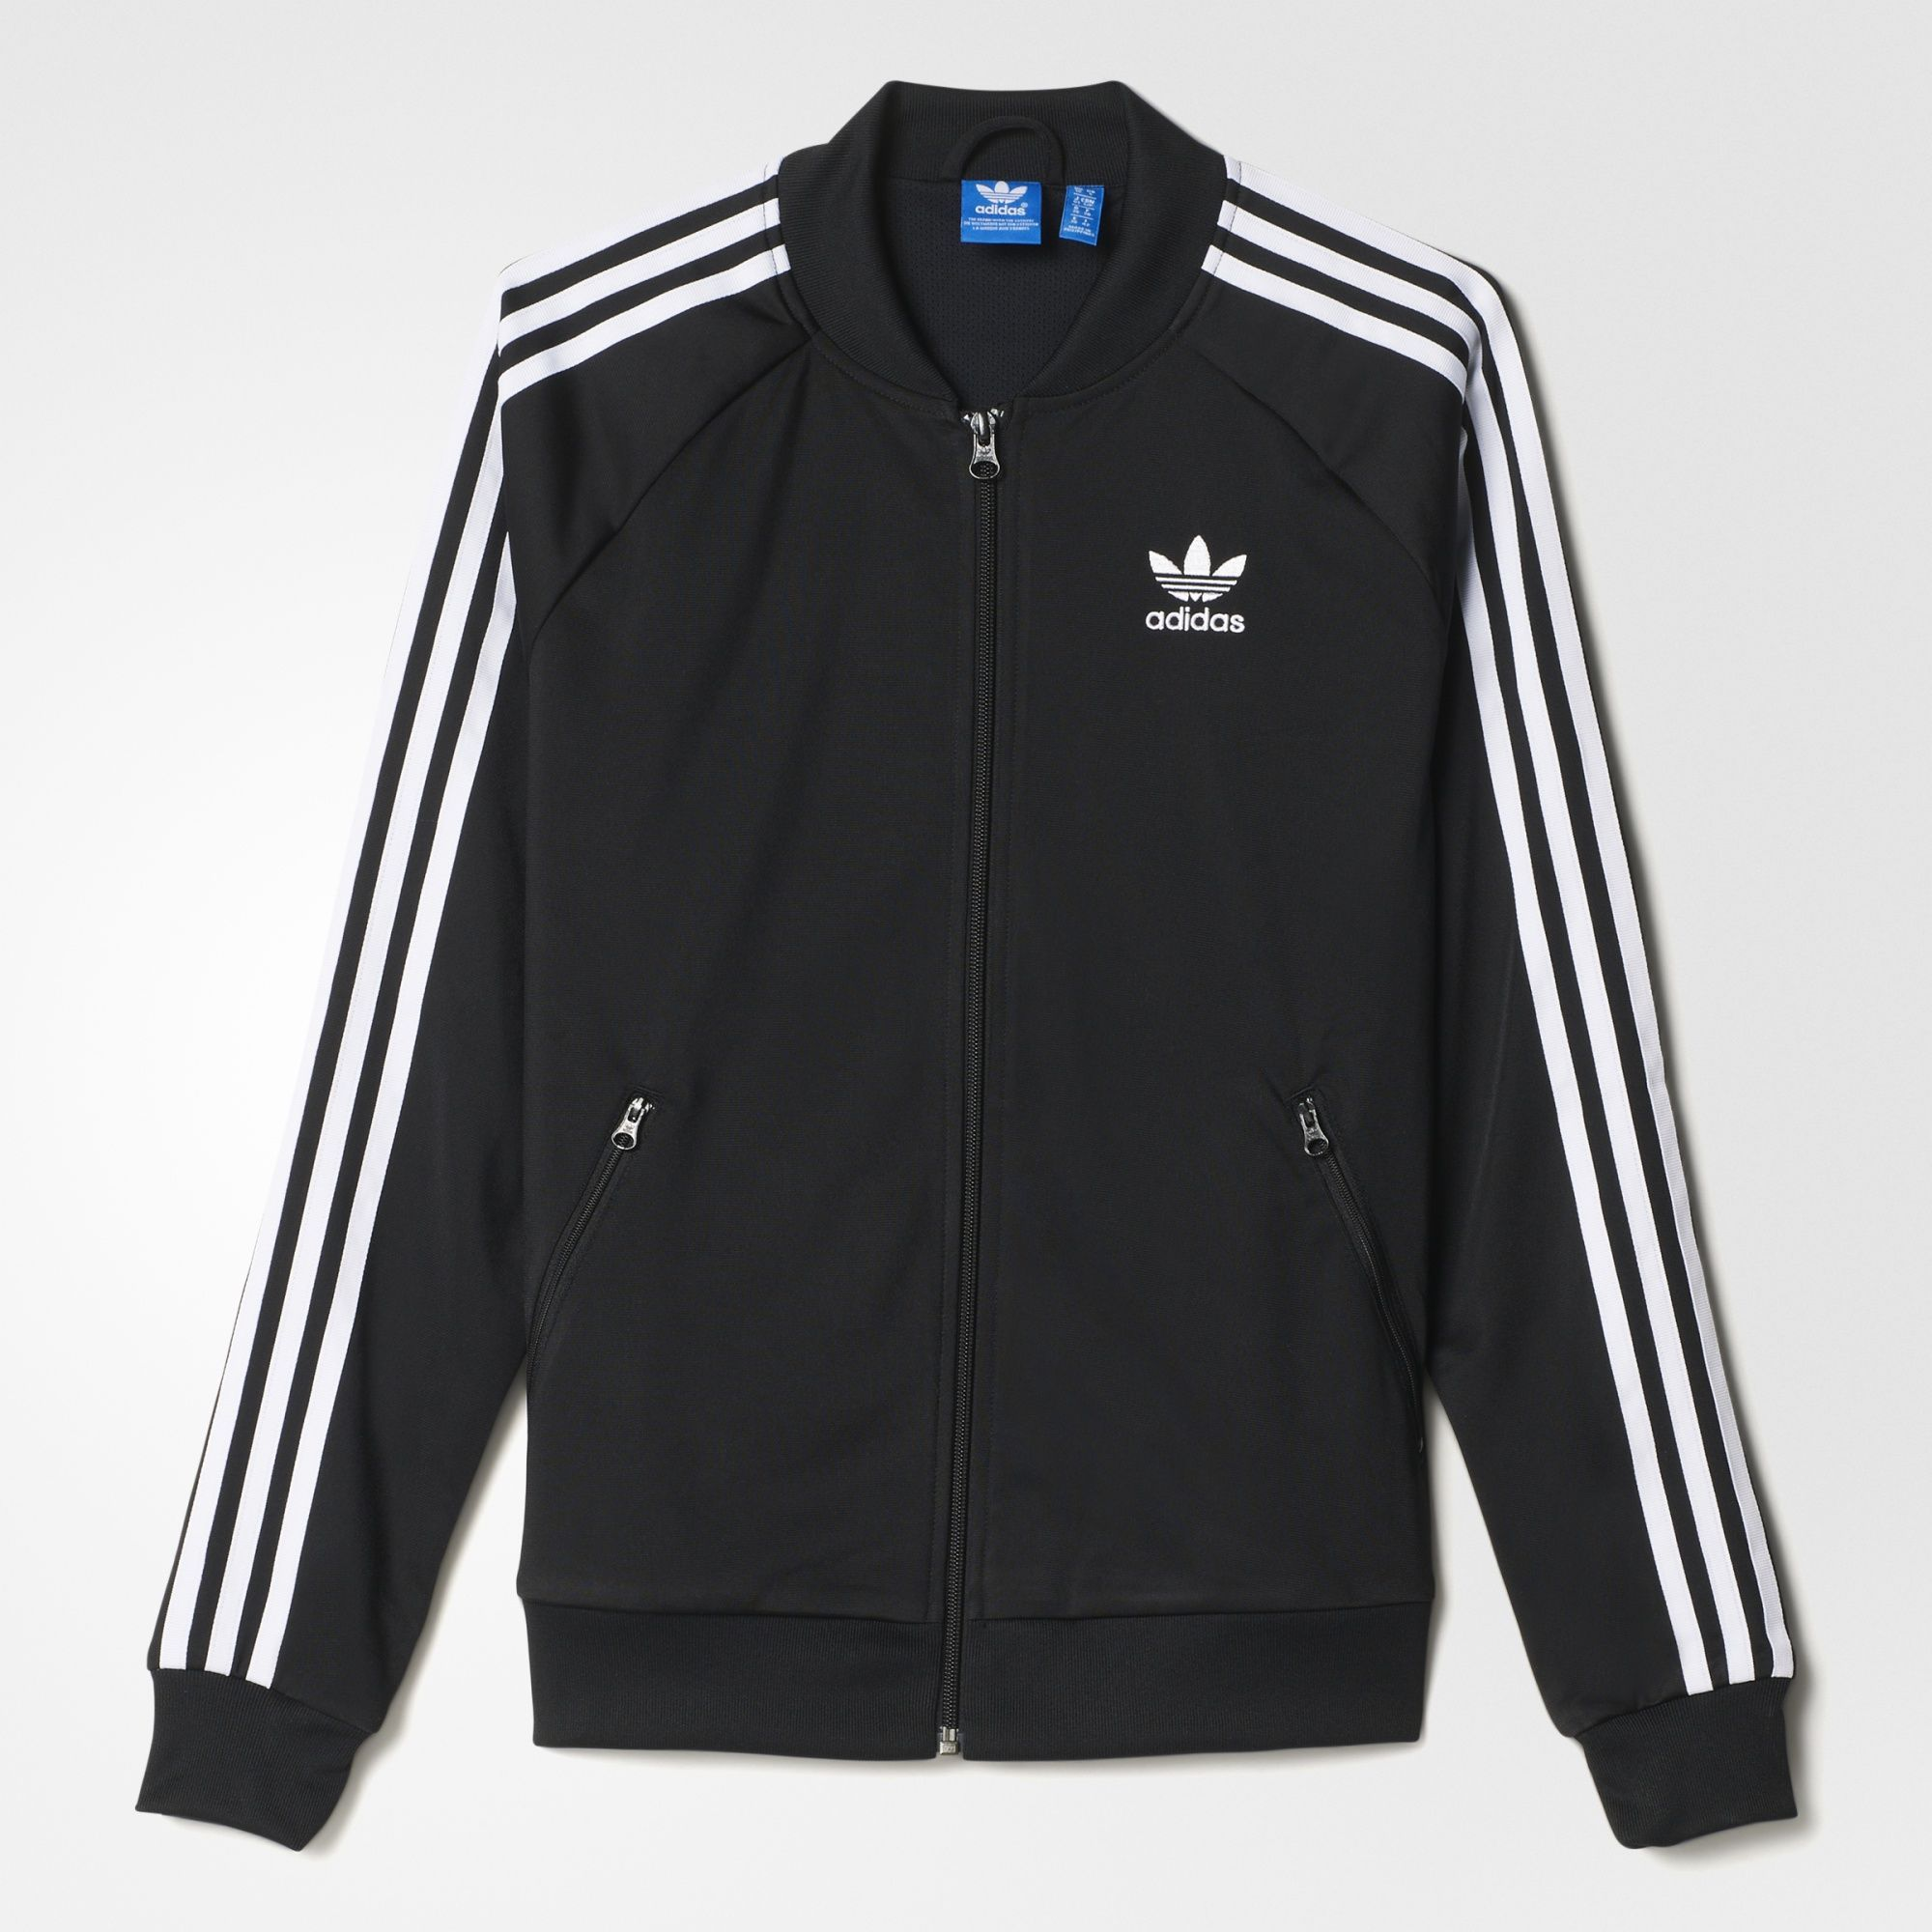 adidas - Supergirl Trainingsjack | Adidas jacket women ...